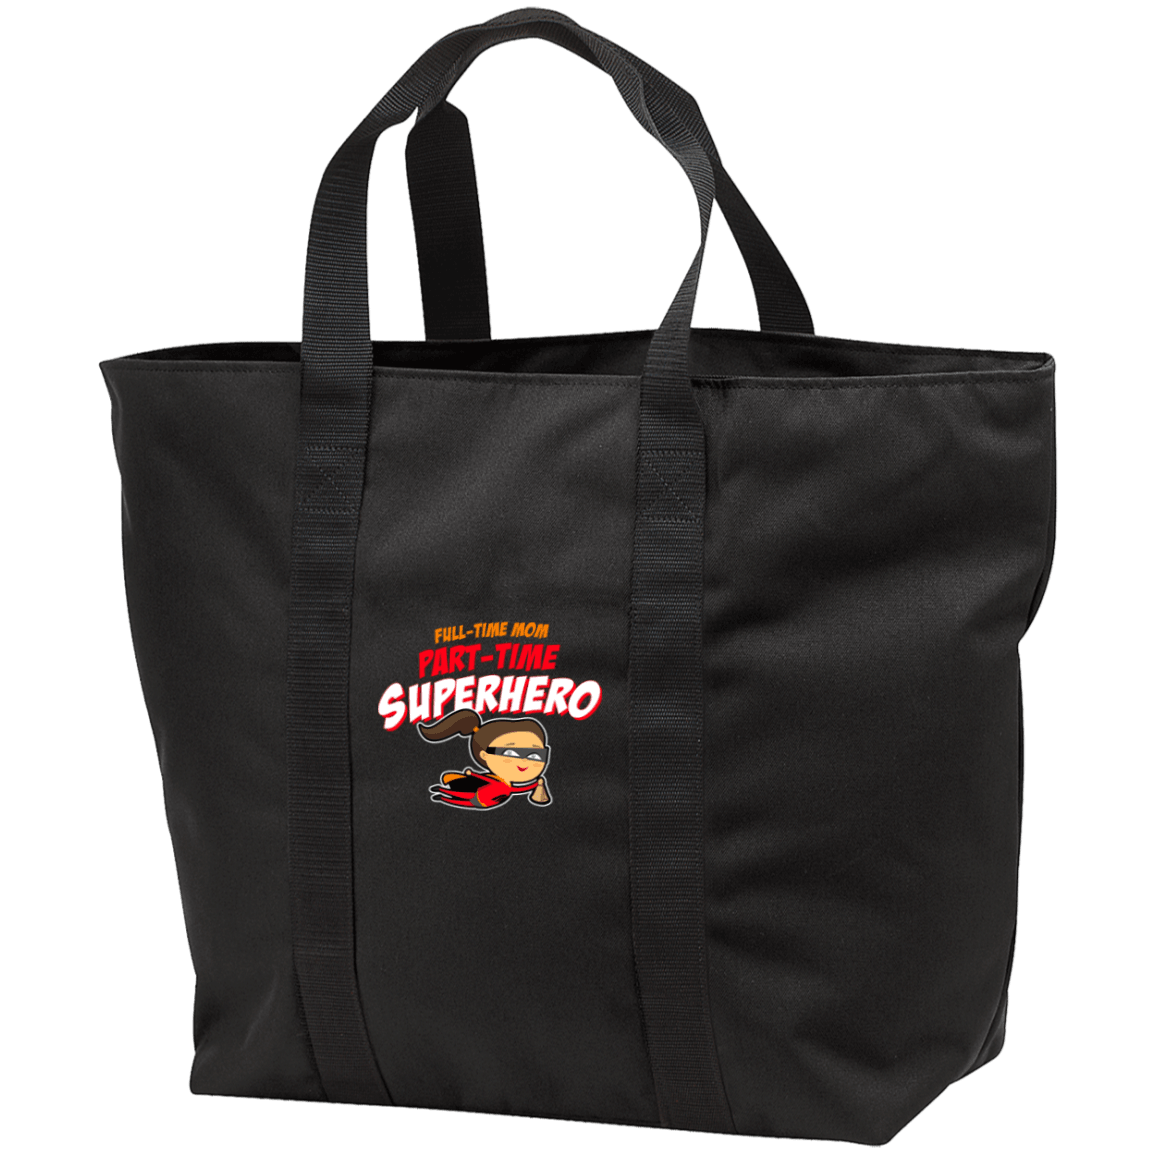 Designs by MyUtopia Shout Out:Full-time Mom Part-Time Superhero All Purpose Tote Bag w Zipper Closure and side pocket,Black/Black / One Size,Totebag